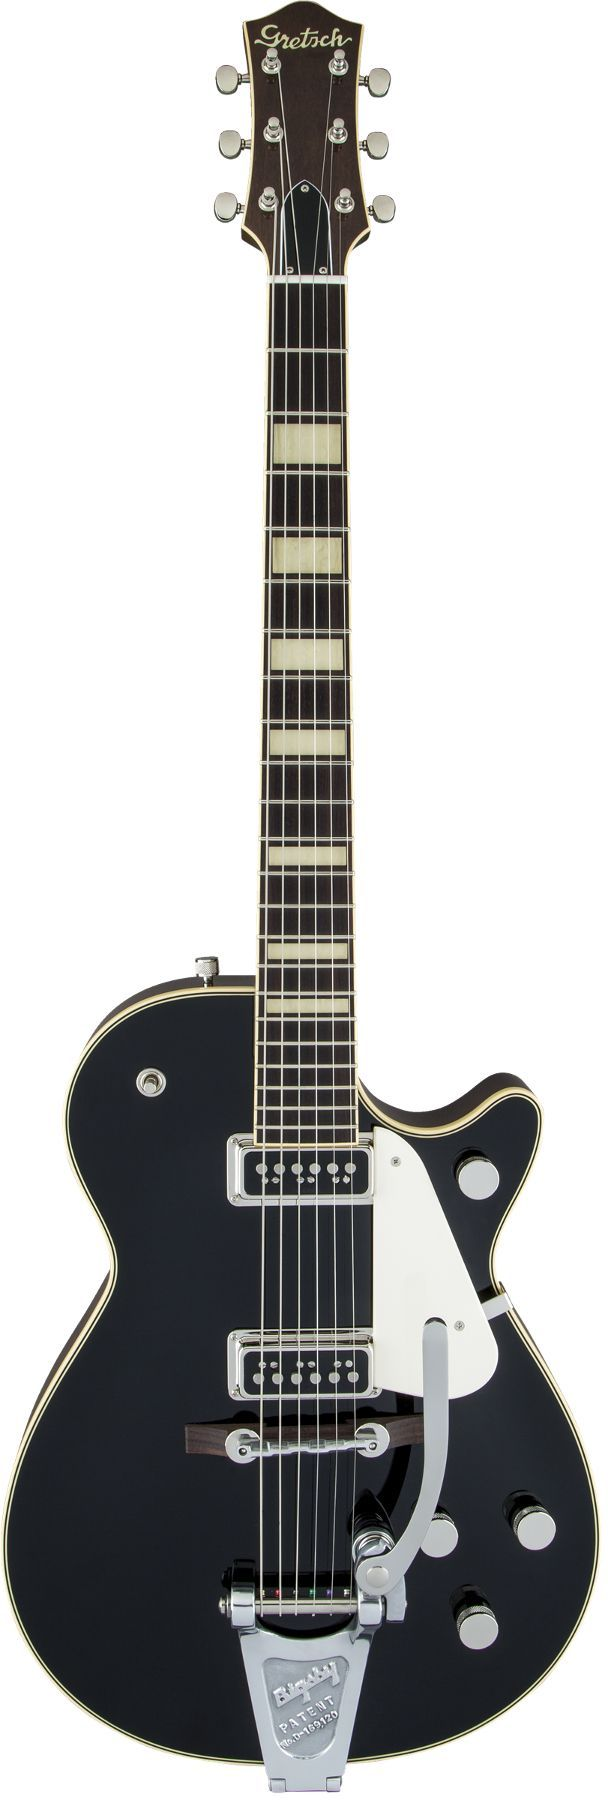 "Gretsch Guitars G6128T-53 Vintage Select '53 The Gretsch Vintage Select guitars take inspiration from the Gretsch guitars of the 1950s and early '60s. Designed with the same chambered mahogany design, the modern G6128T-53 adds a rare Gretsch ""sc #GretschGuitars"